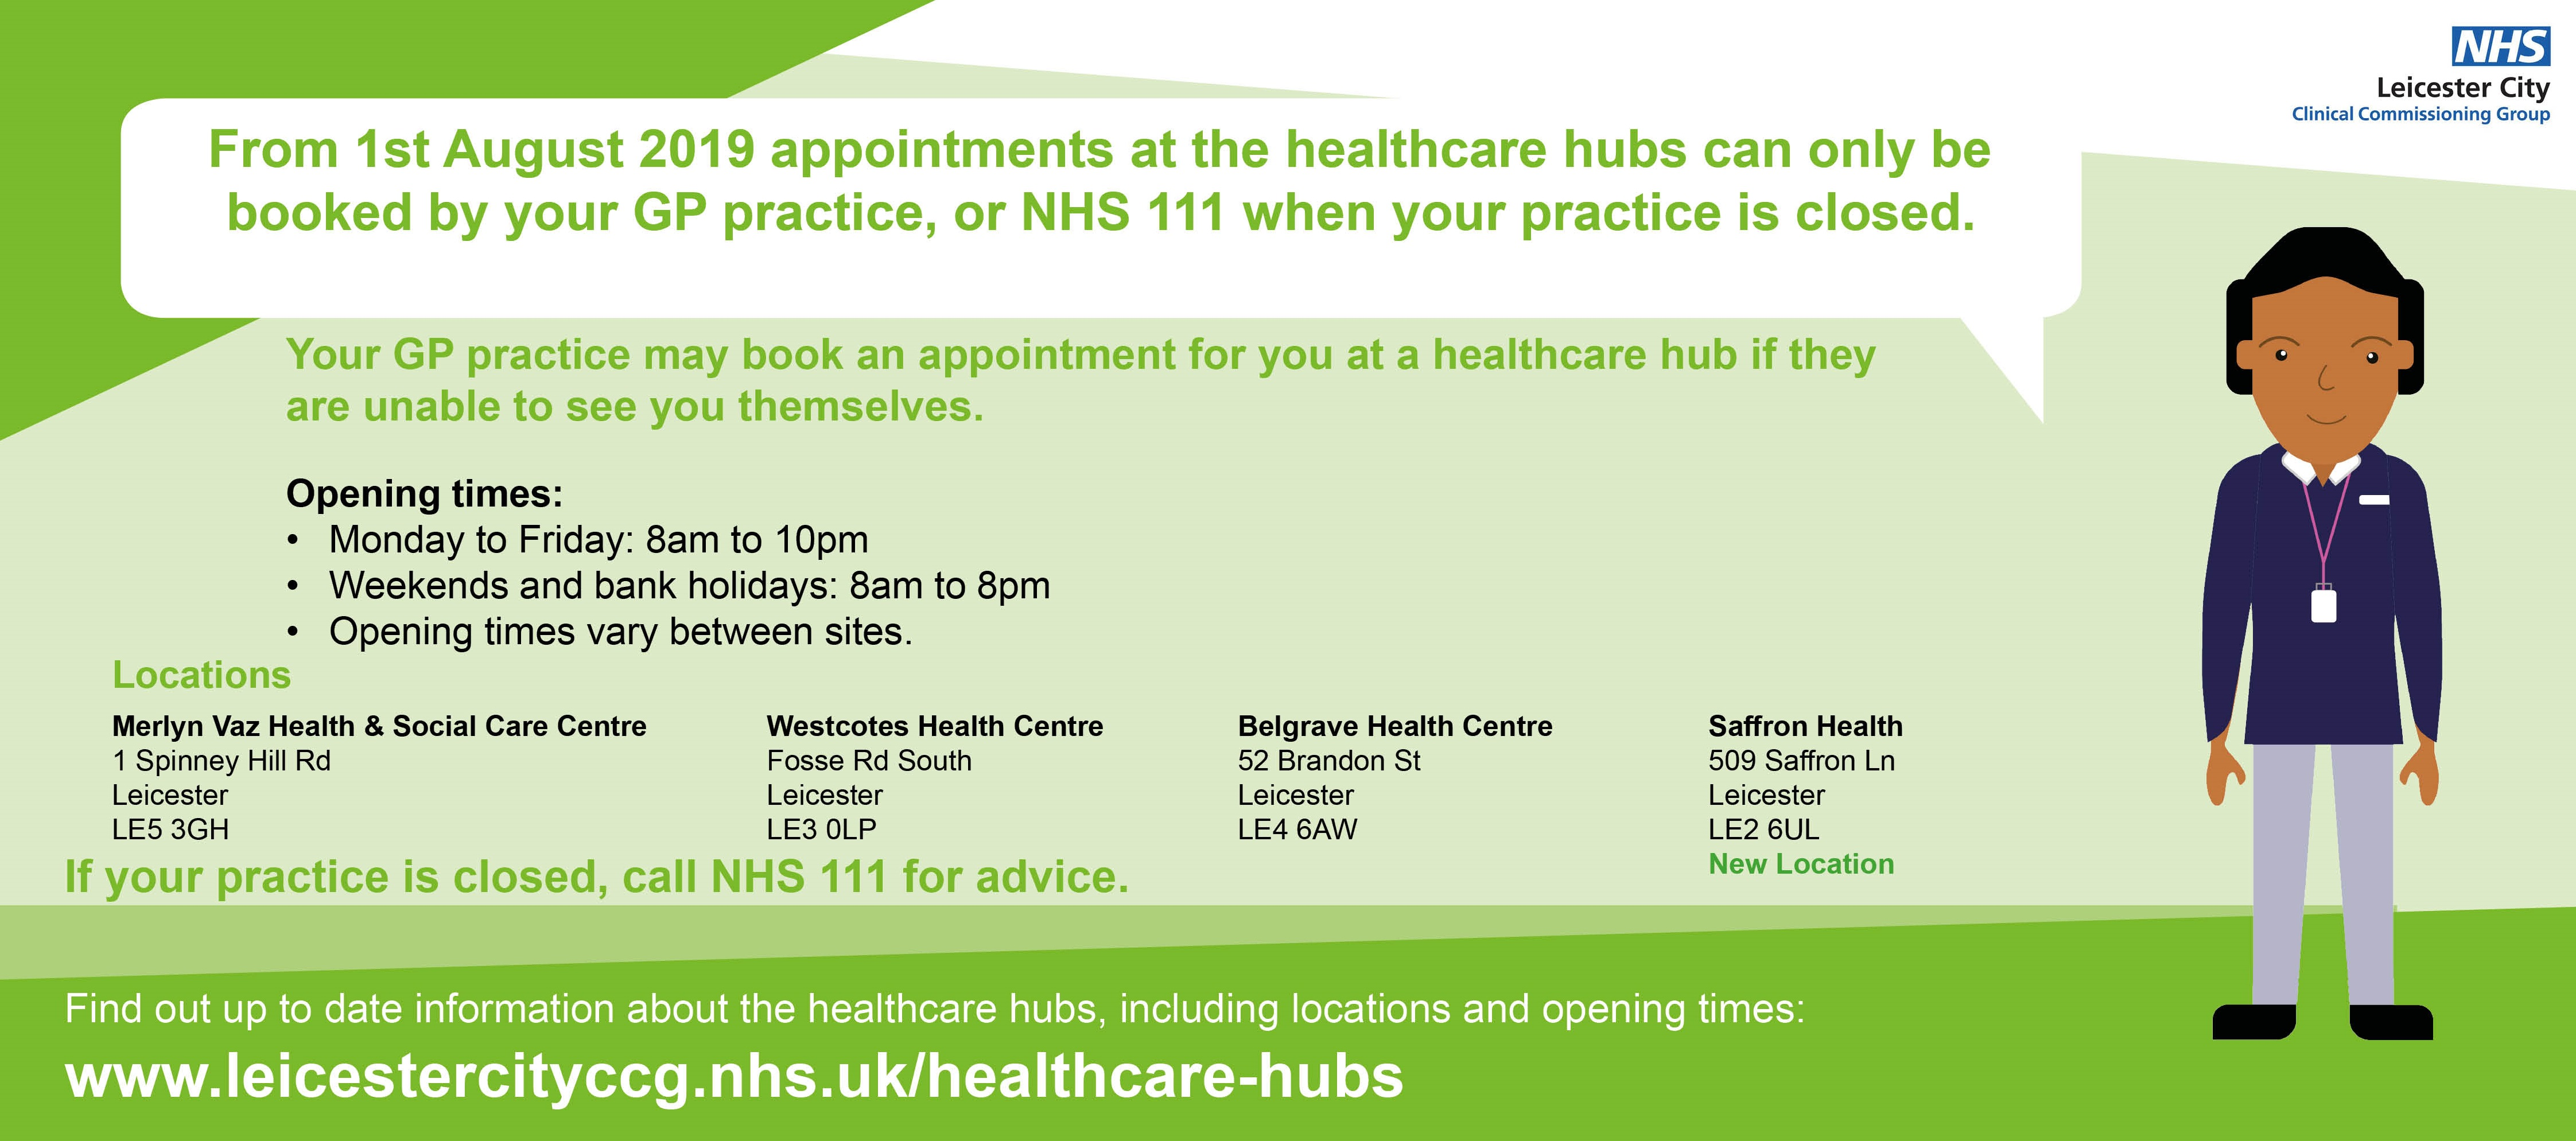 Leicester City Healthcare Hubs